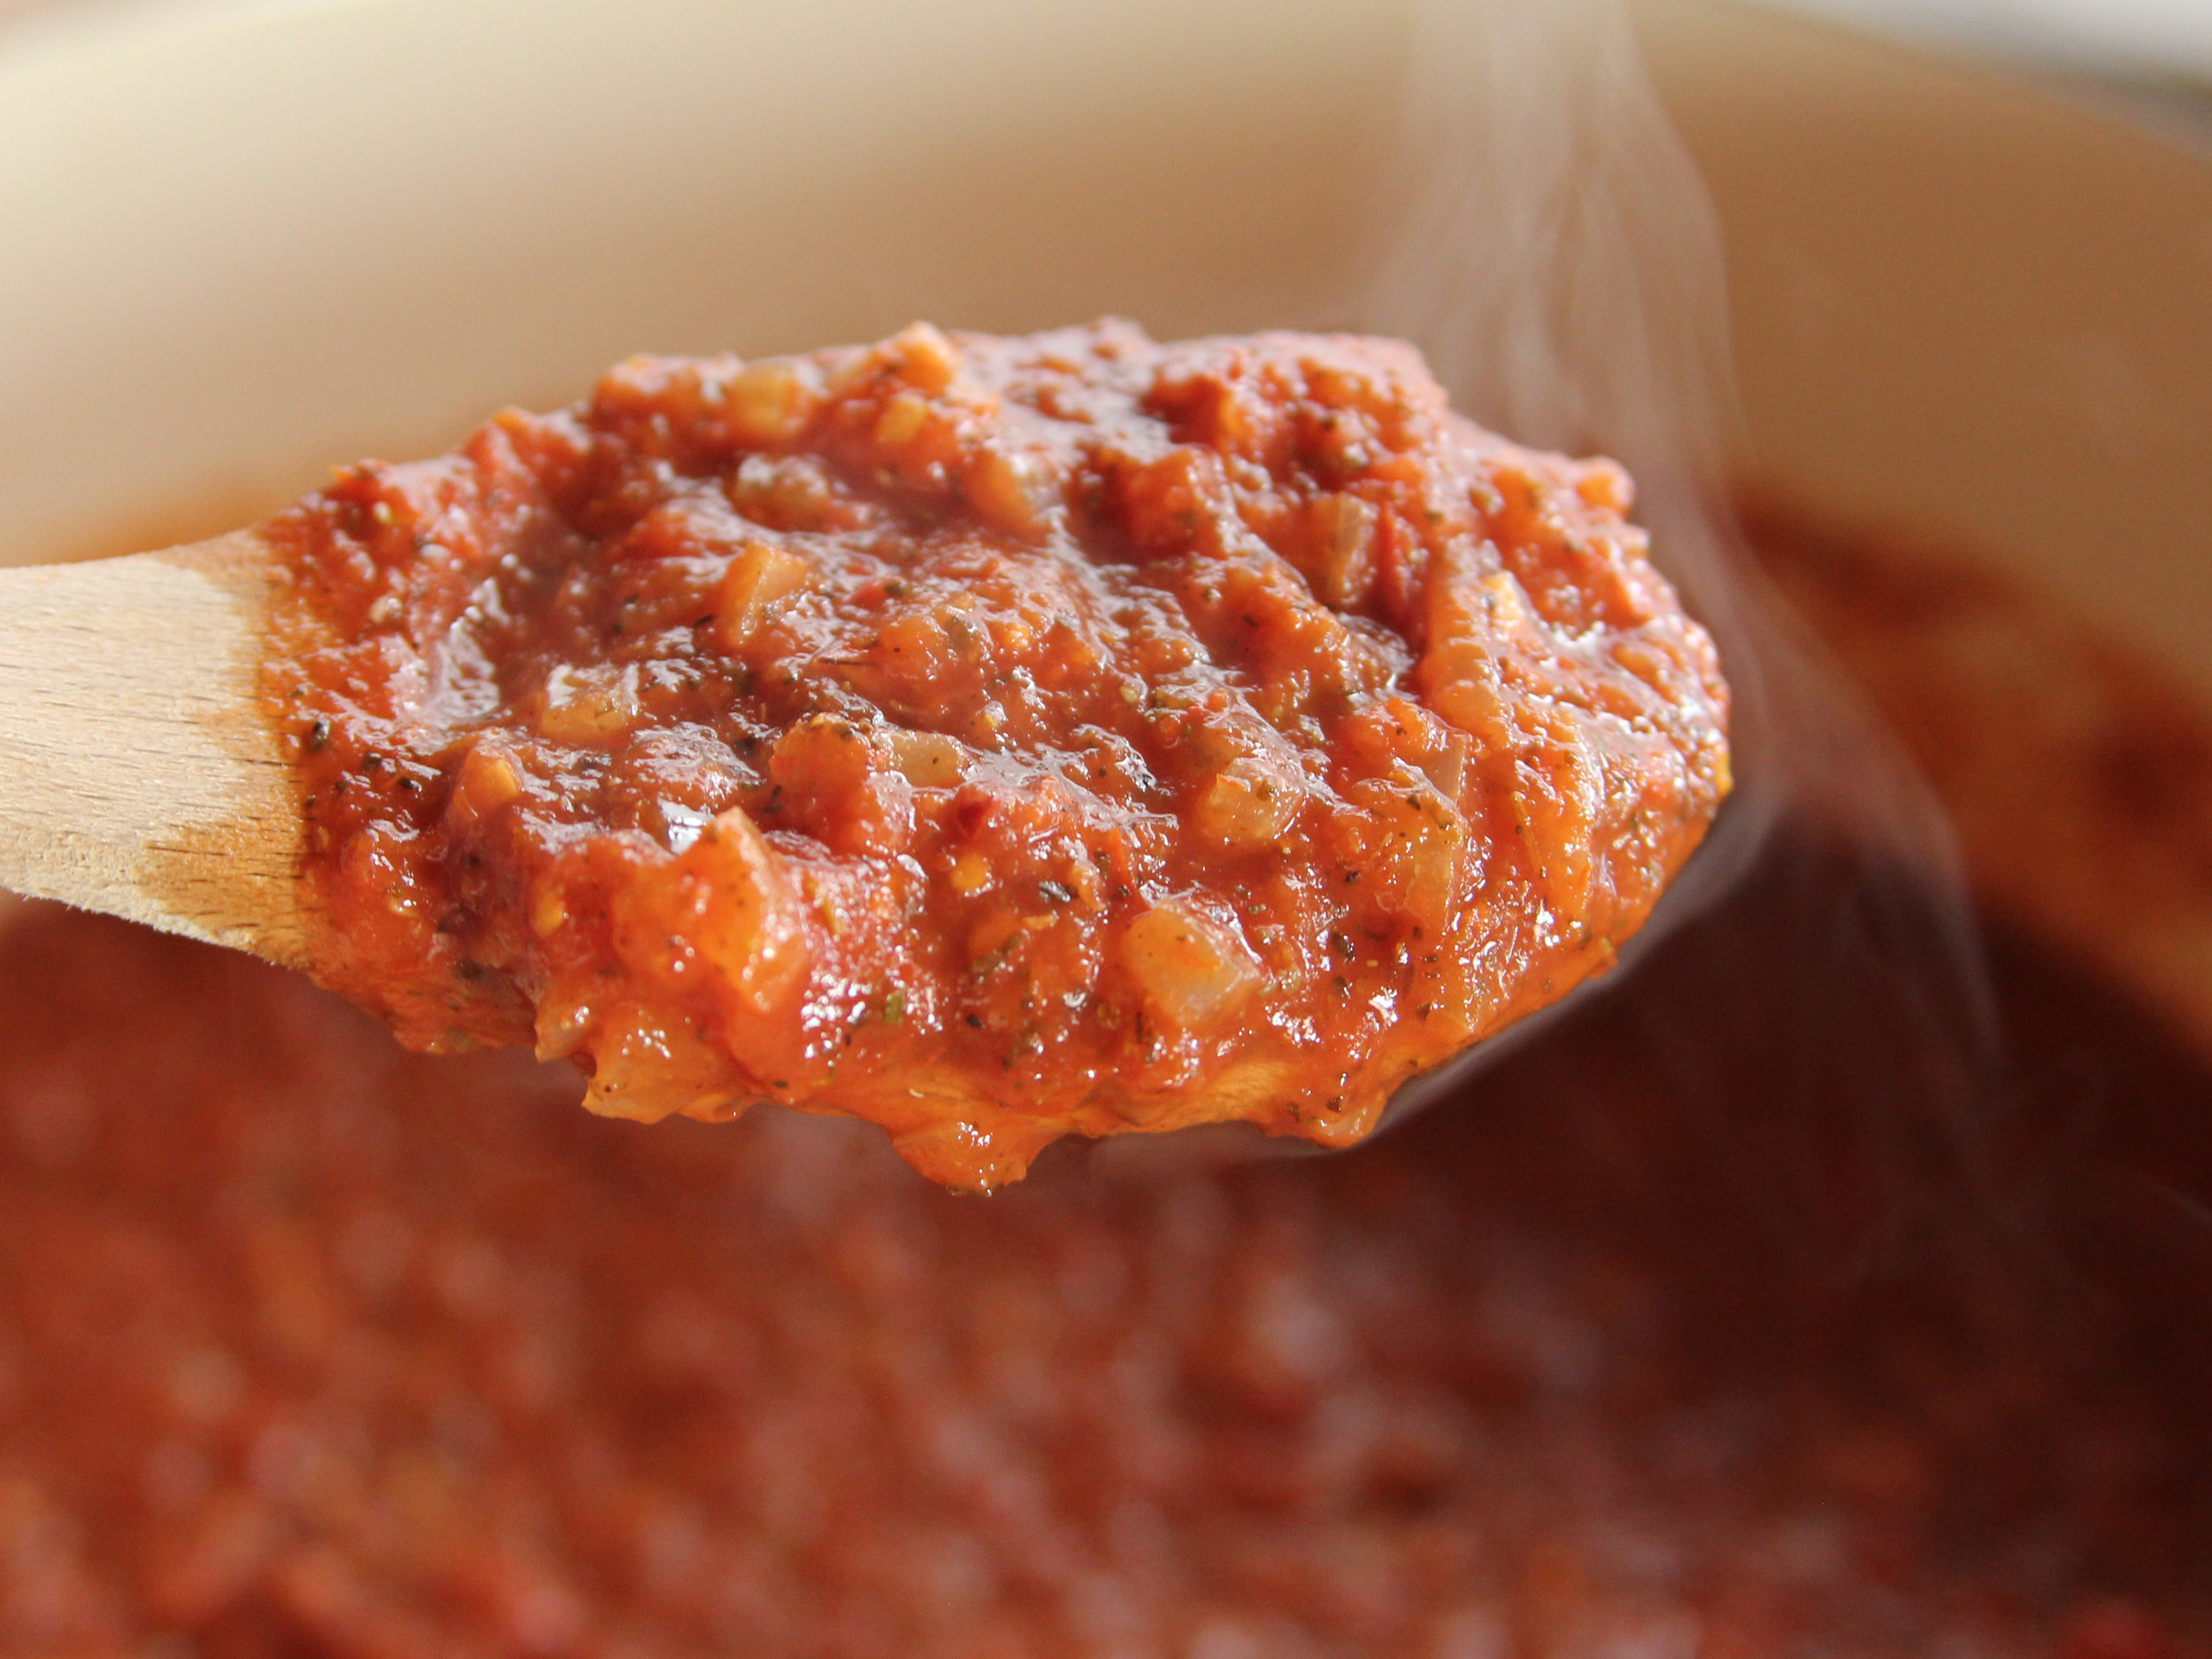 ARRABIATTA: A spicy red sauce made with  spicy Calabrian chili peppers, r  oasted garlic and EVOO.